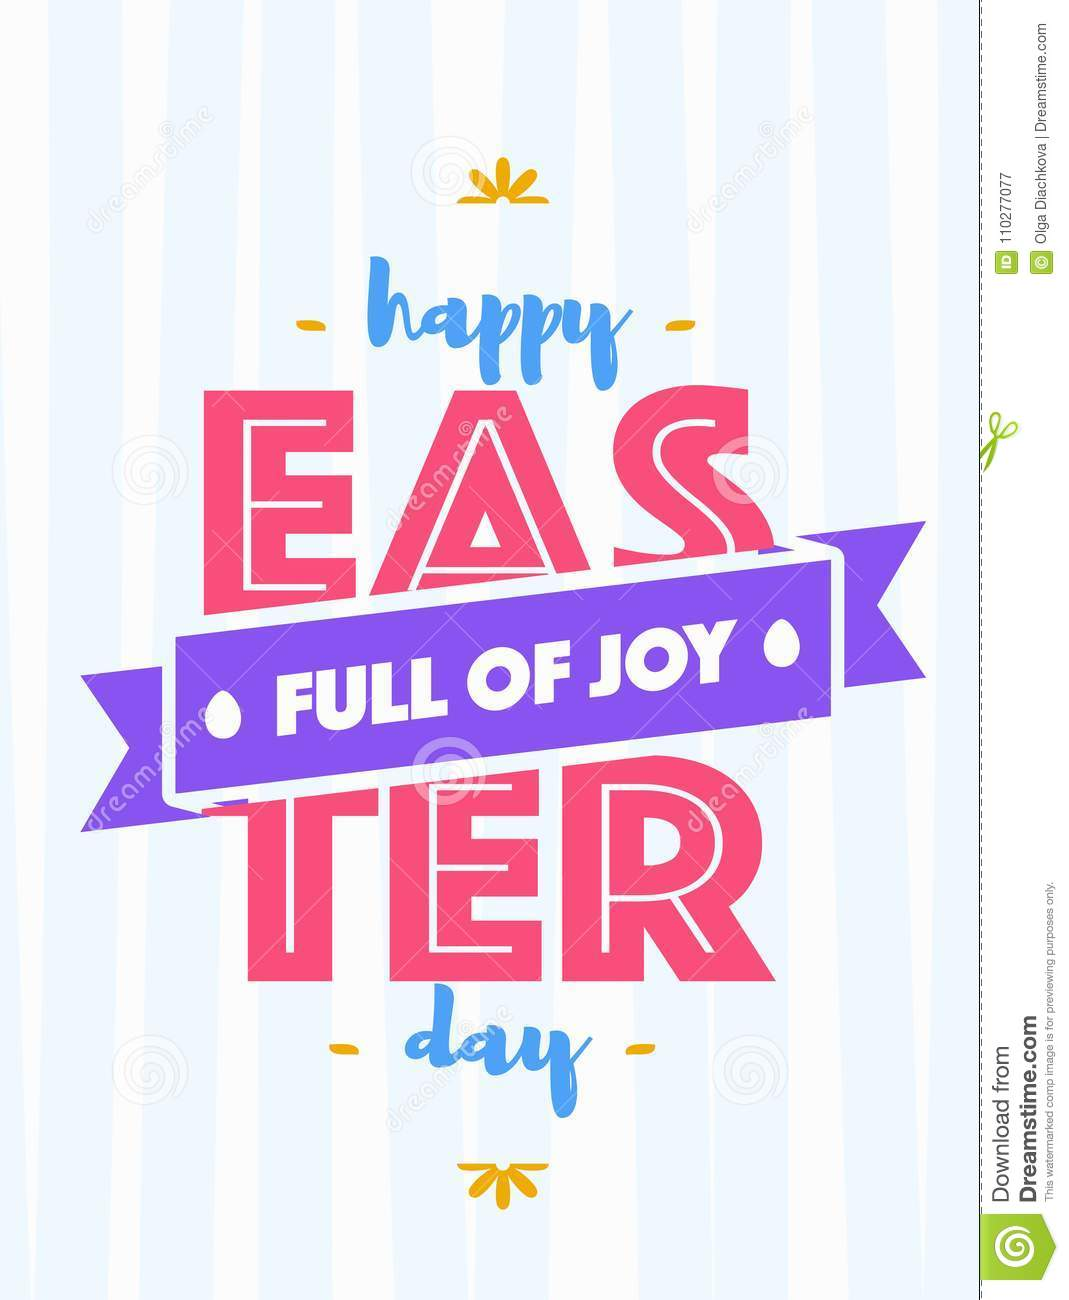 Easter Greeting Card with Wish   Happy Easter Day Full of Joy Cute ...